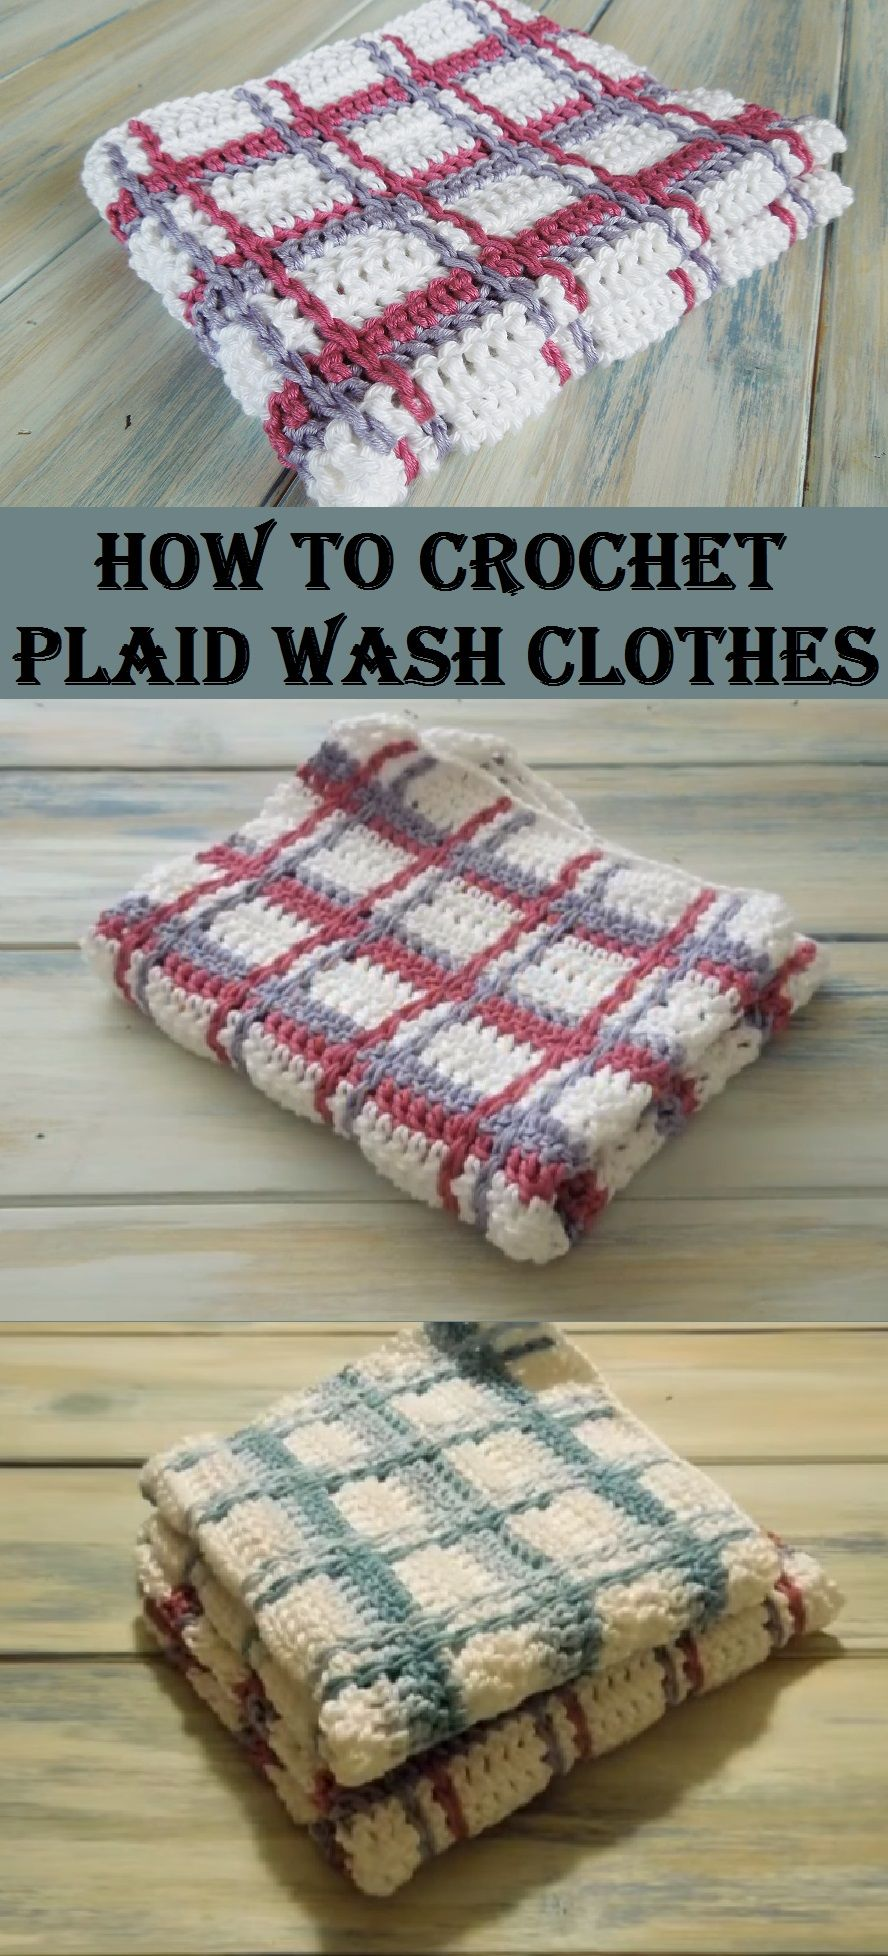 Crochet Plaid Wash Clothes | Handarb, Spültücher, Waschlappen ...